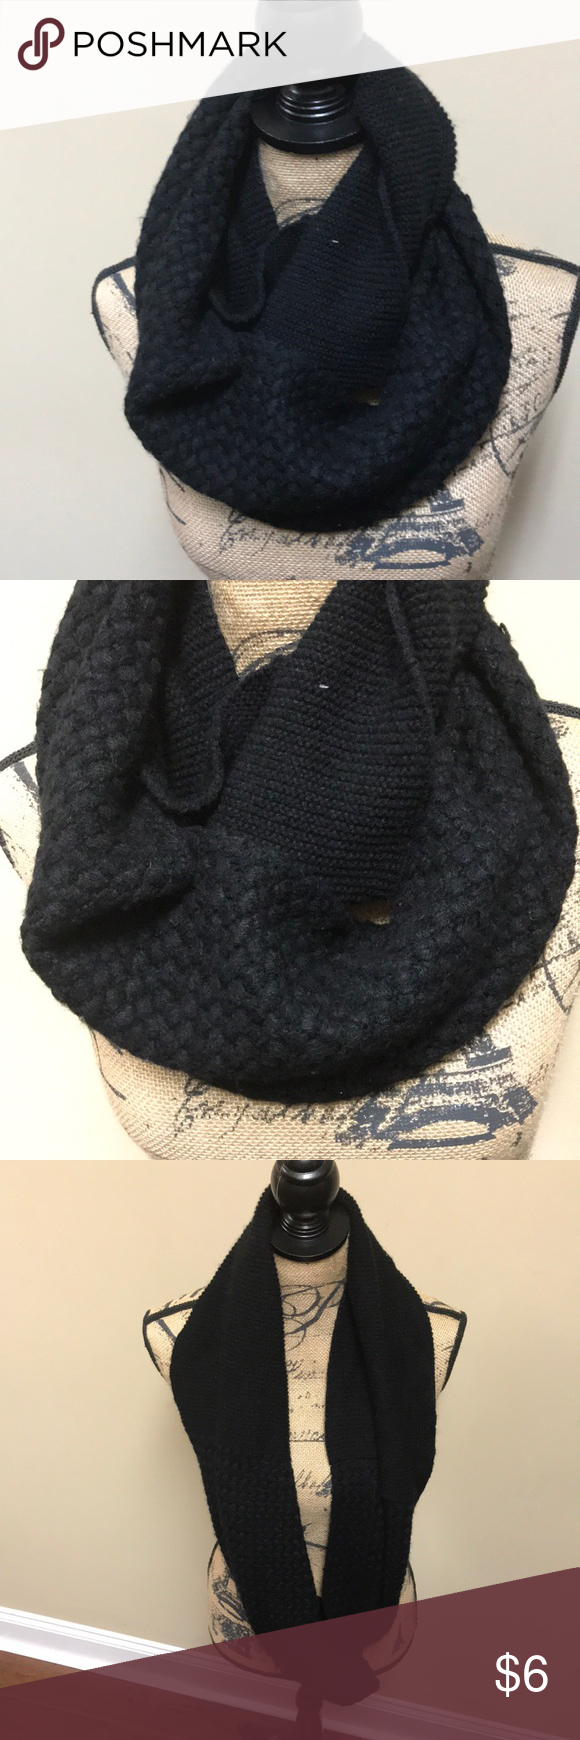 Infinity Scarf 🧣 Infinity Scarf 🧣 Accessories Scarves & Wraps